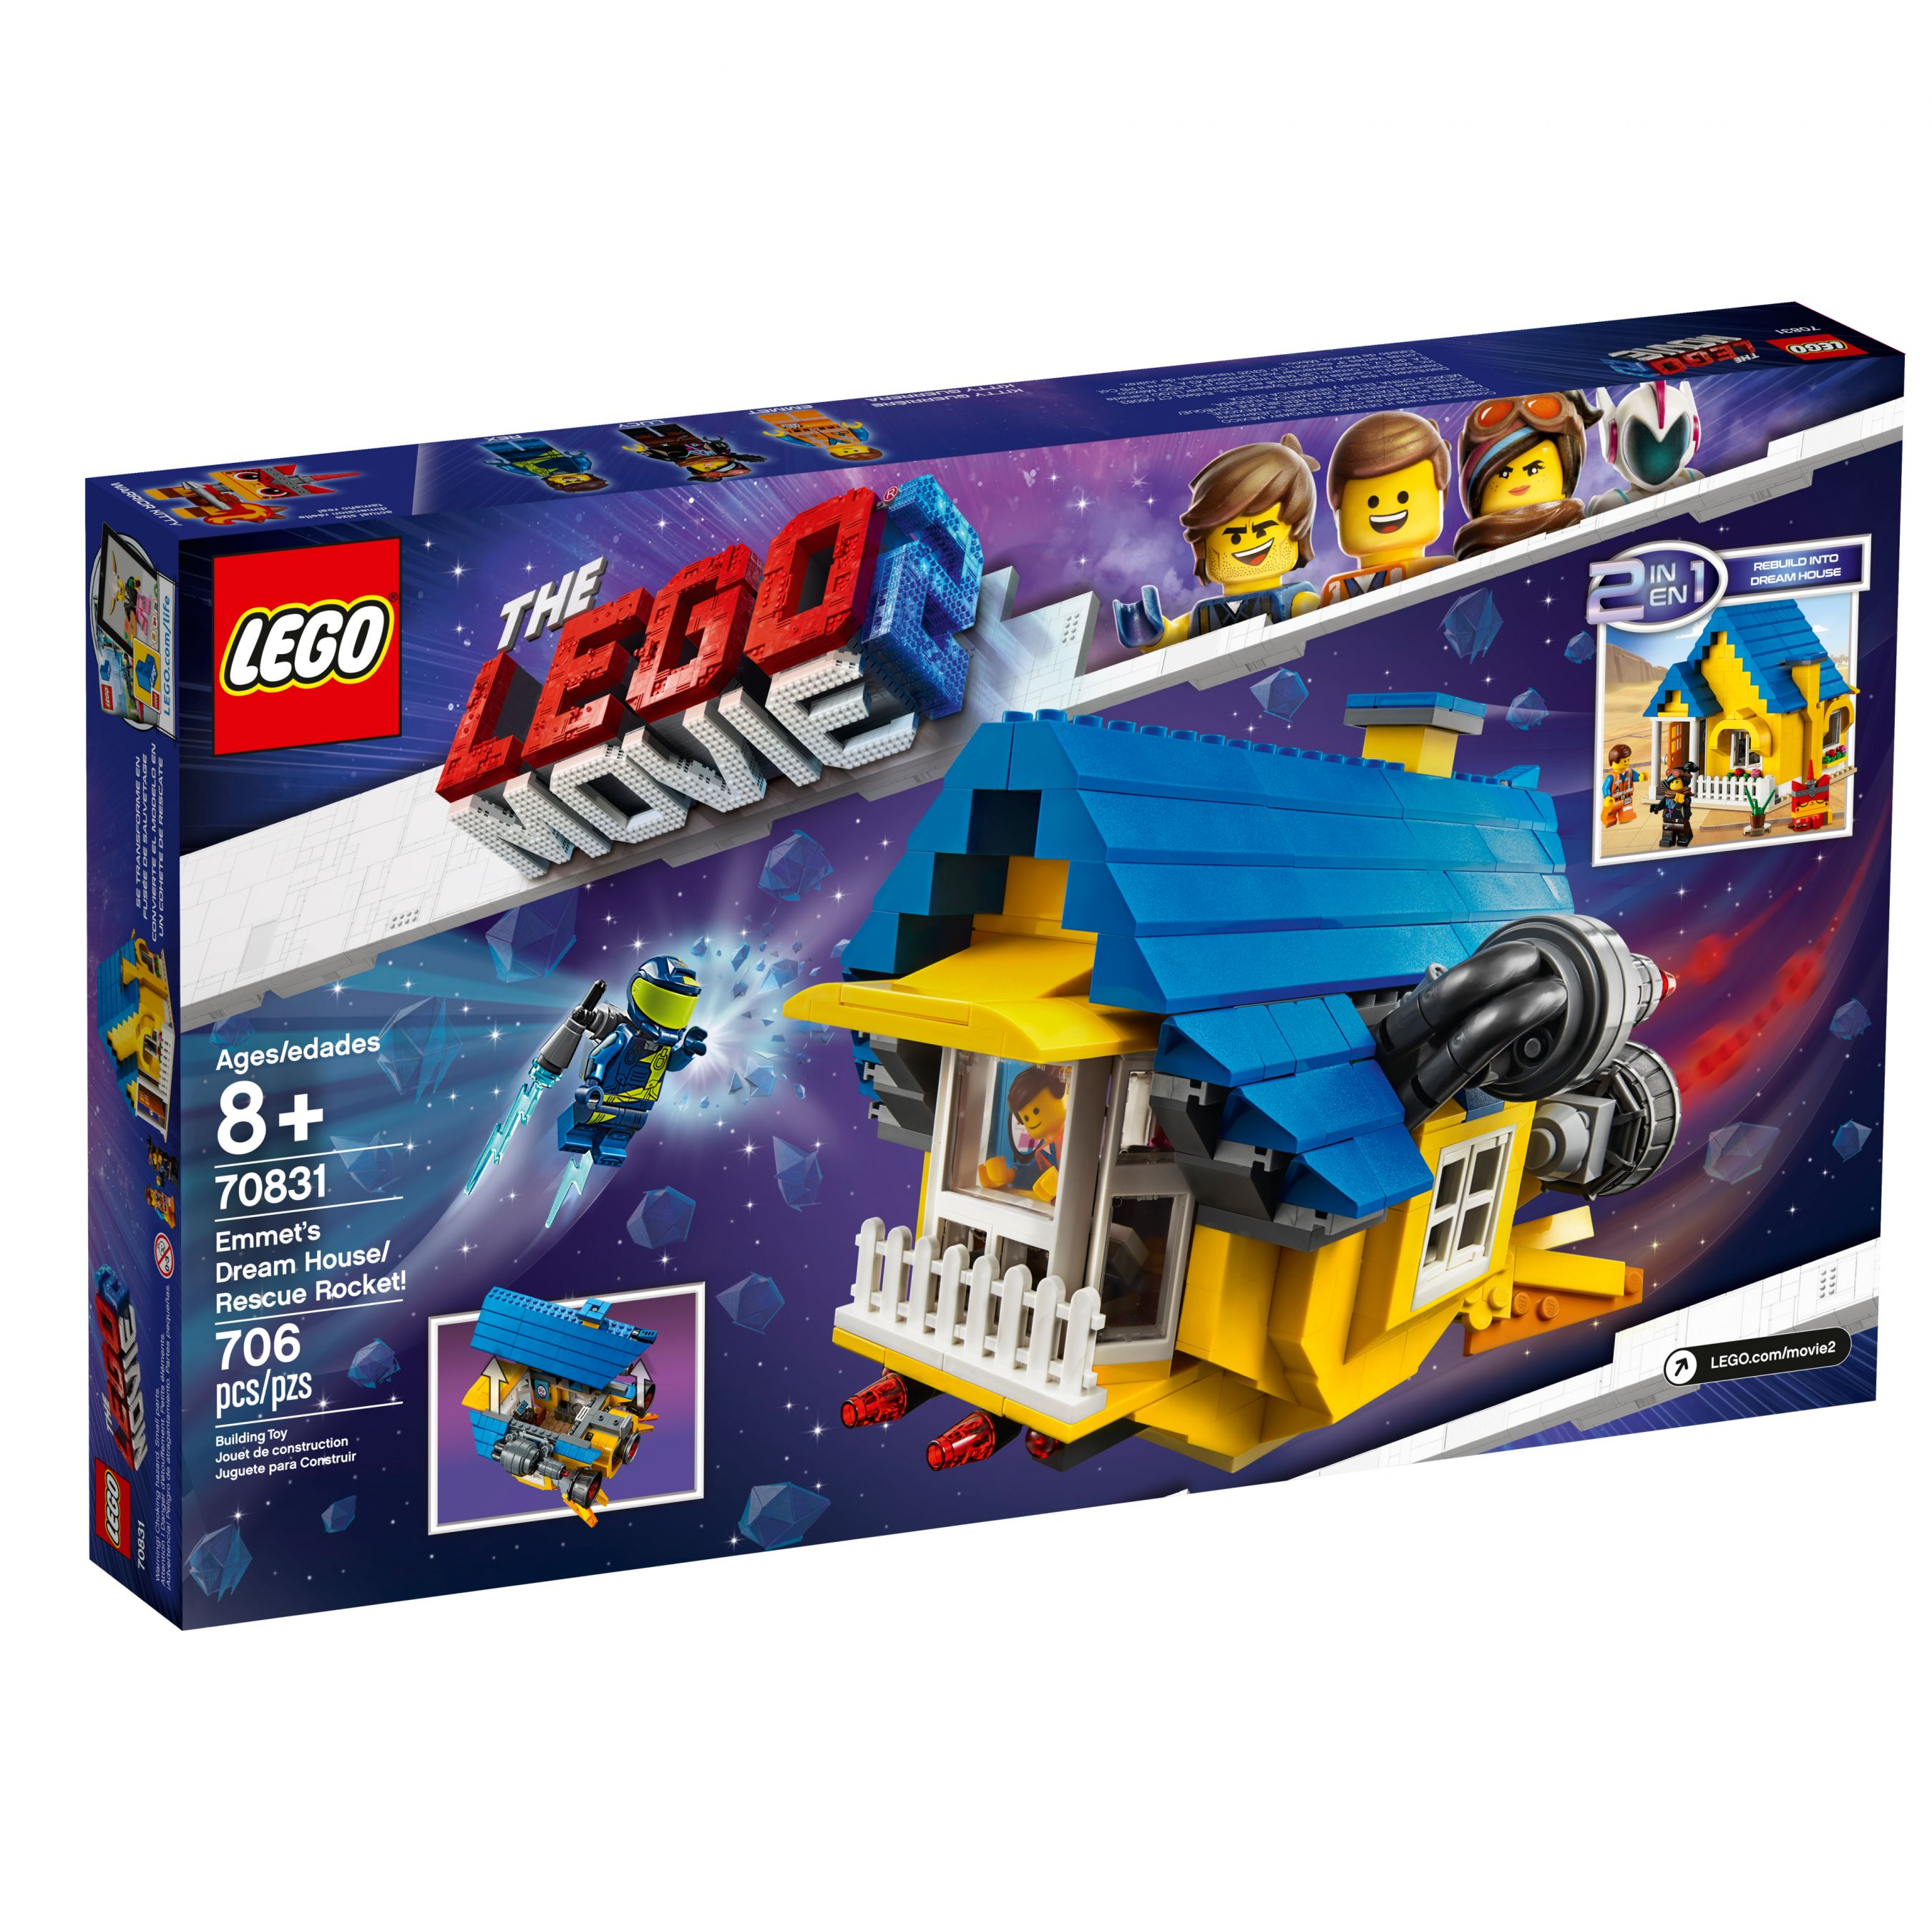 LEGO The LEGO Movie 70831 Emmets Traumhaus/Rettungsrakete! LEGO_70831_alt2.jpg